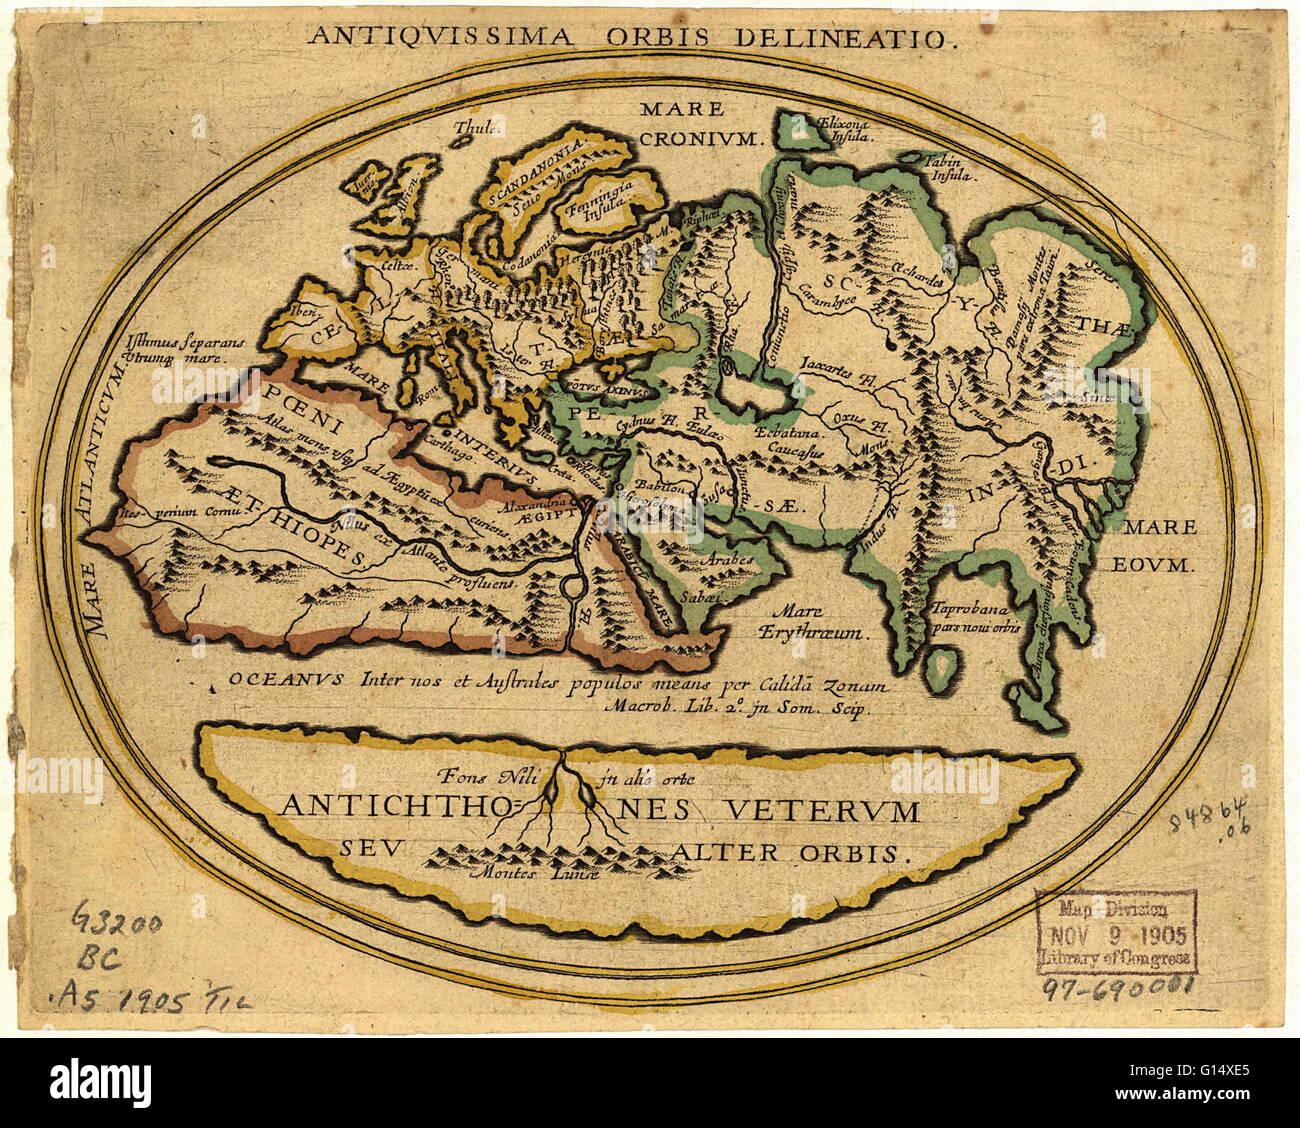 Map Of The Old World With Latin Text The Title Is Antiquissima - Where to buy old world maps